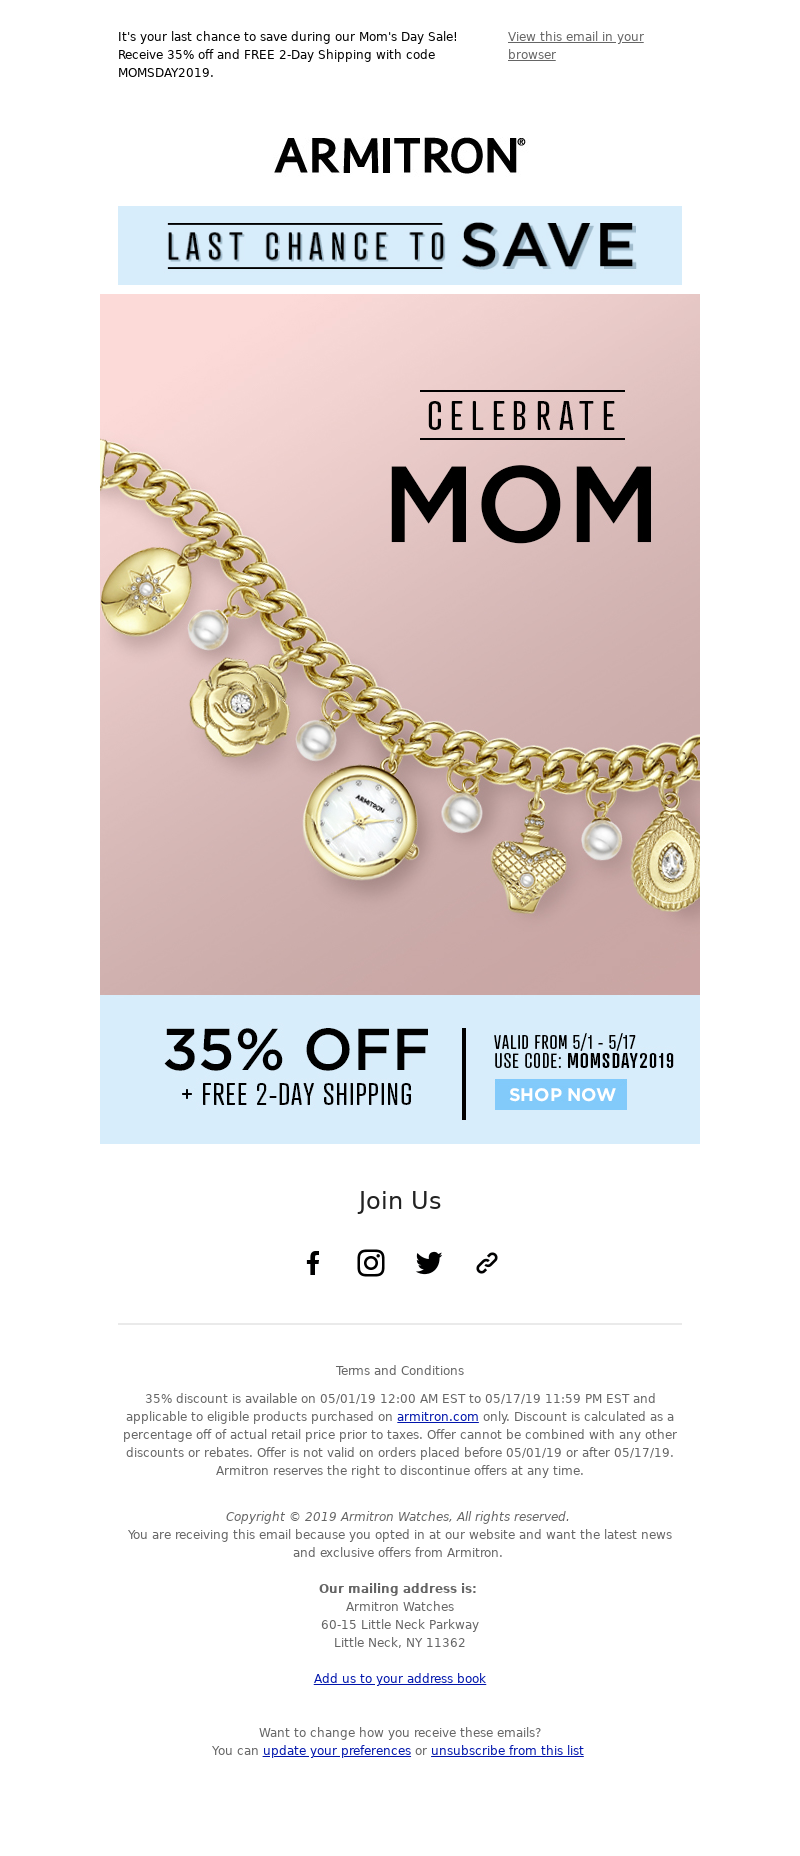 It's your last chance to save during our Mom's Day Sale! Receive 35% off an